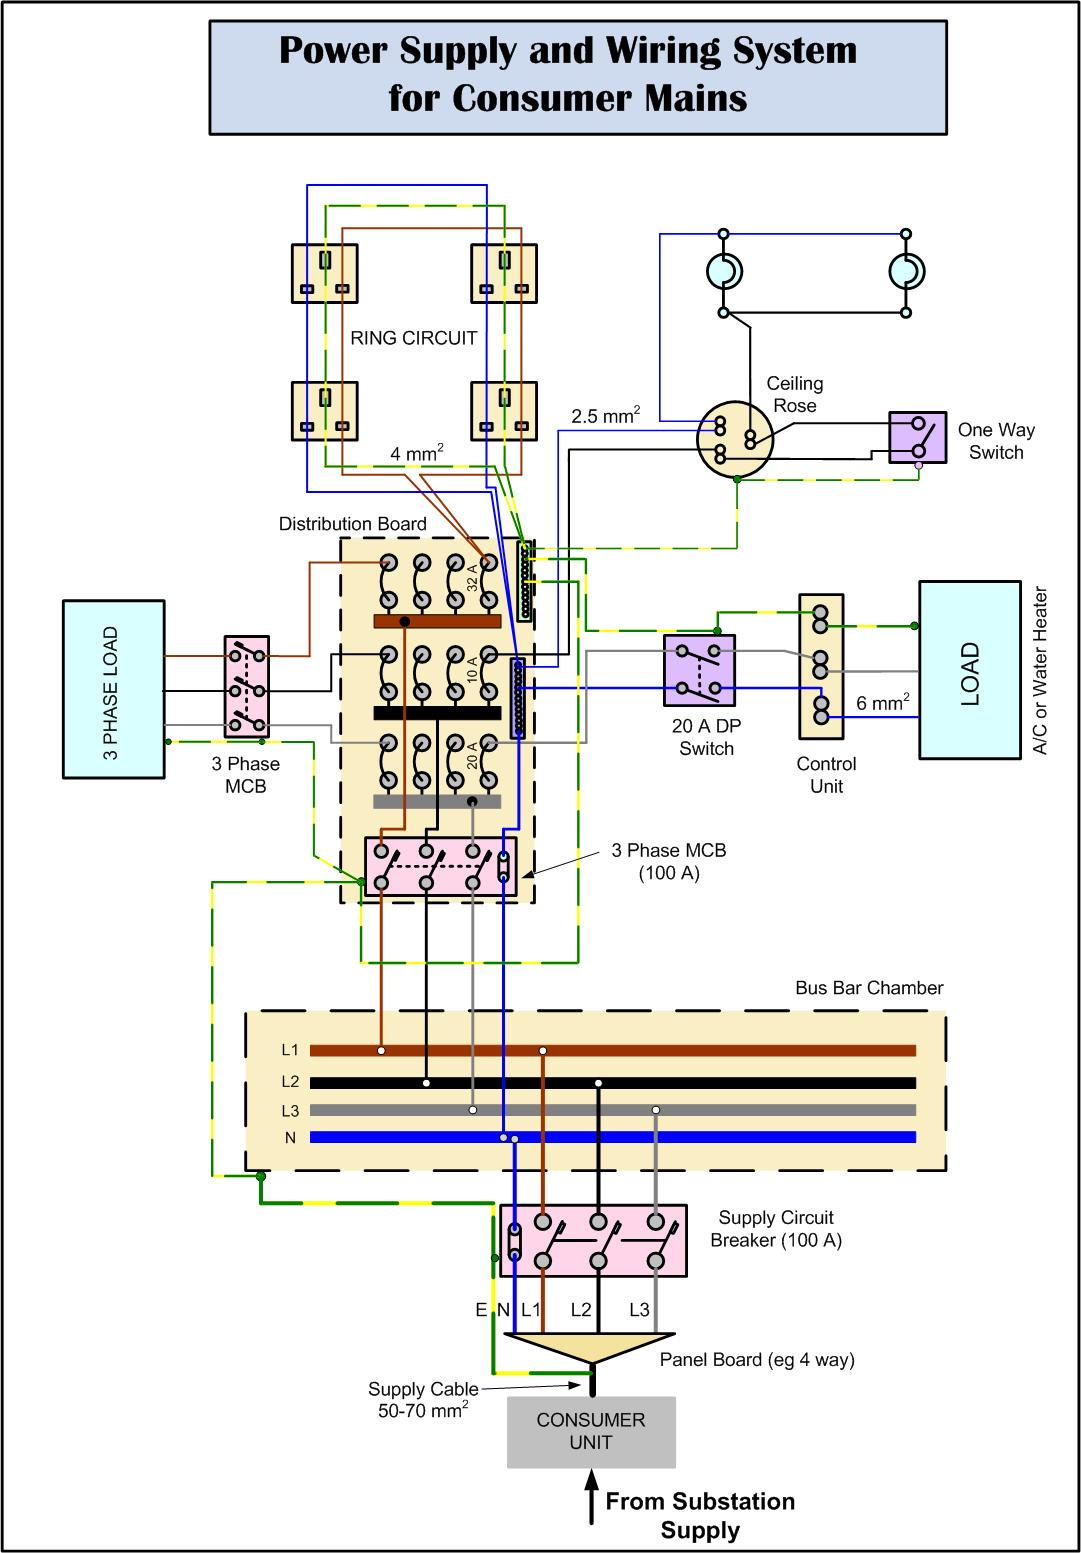 Consumer_Mains_Wiring A Sub Panel Breaker Box Wiring Diagram Automotive on